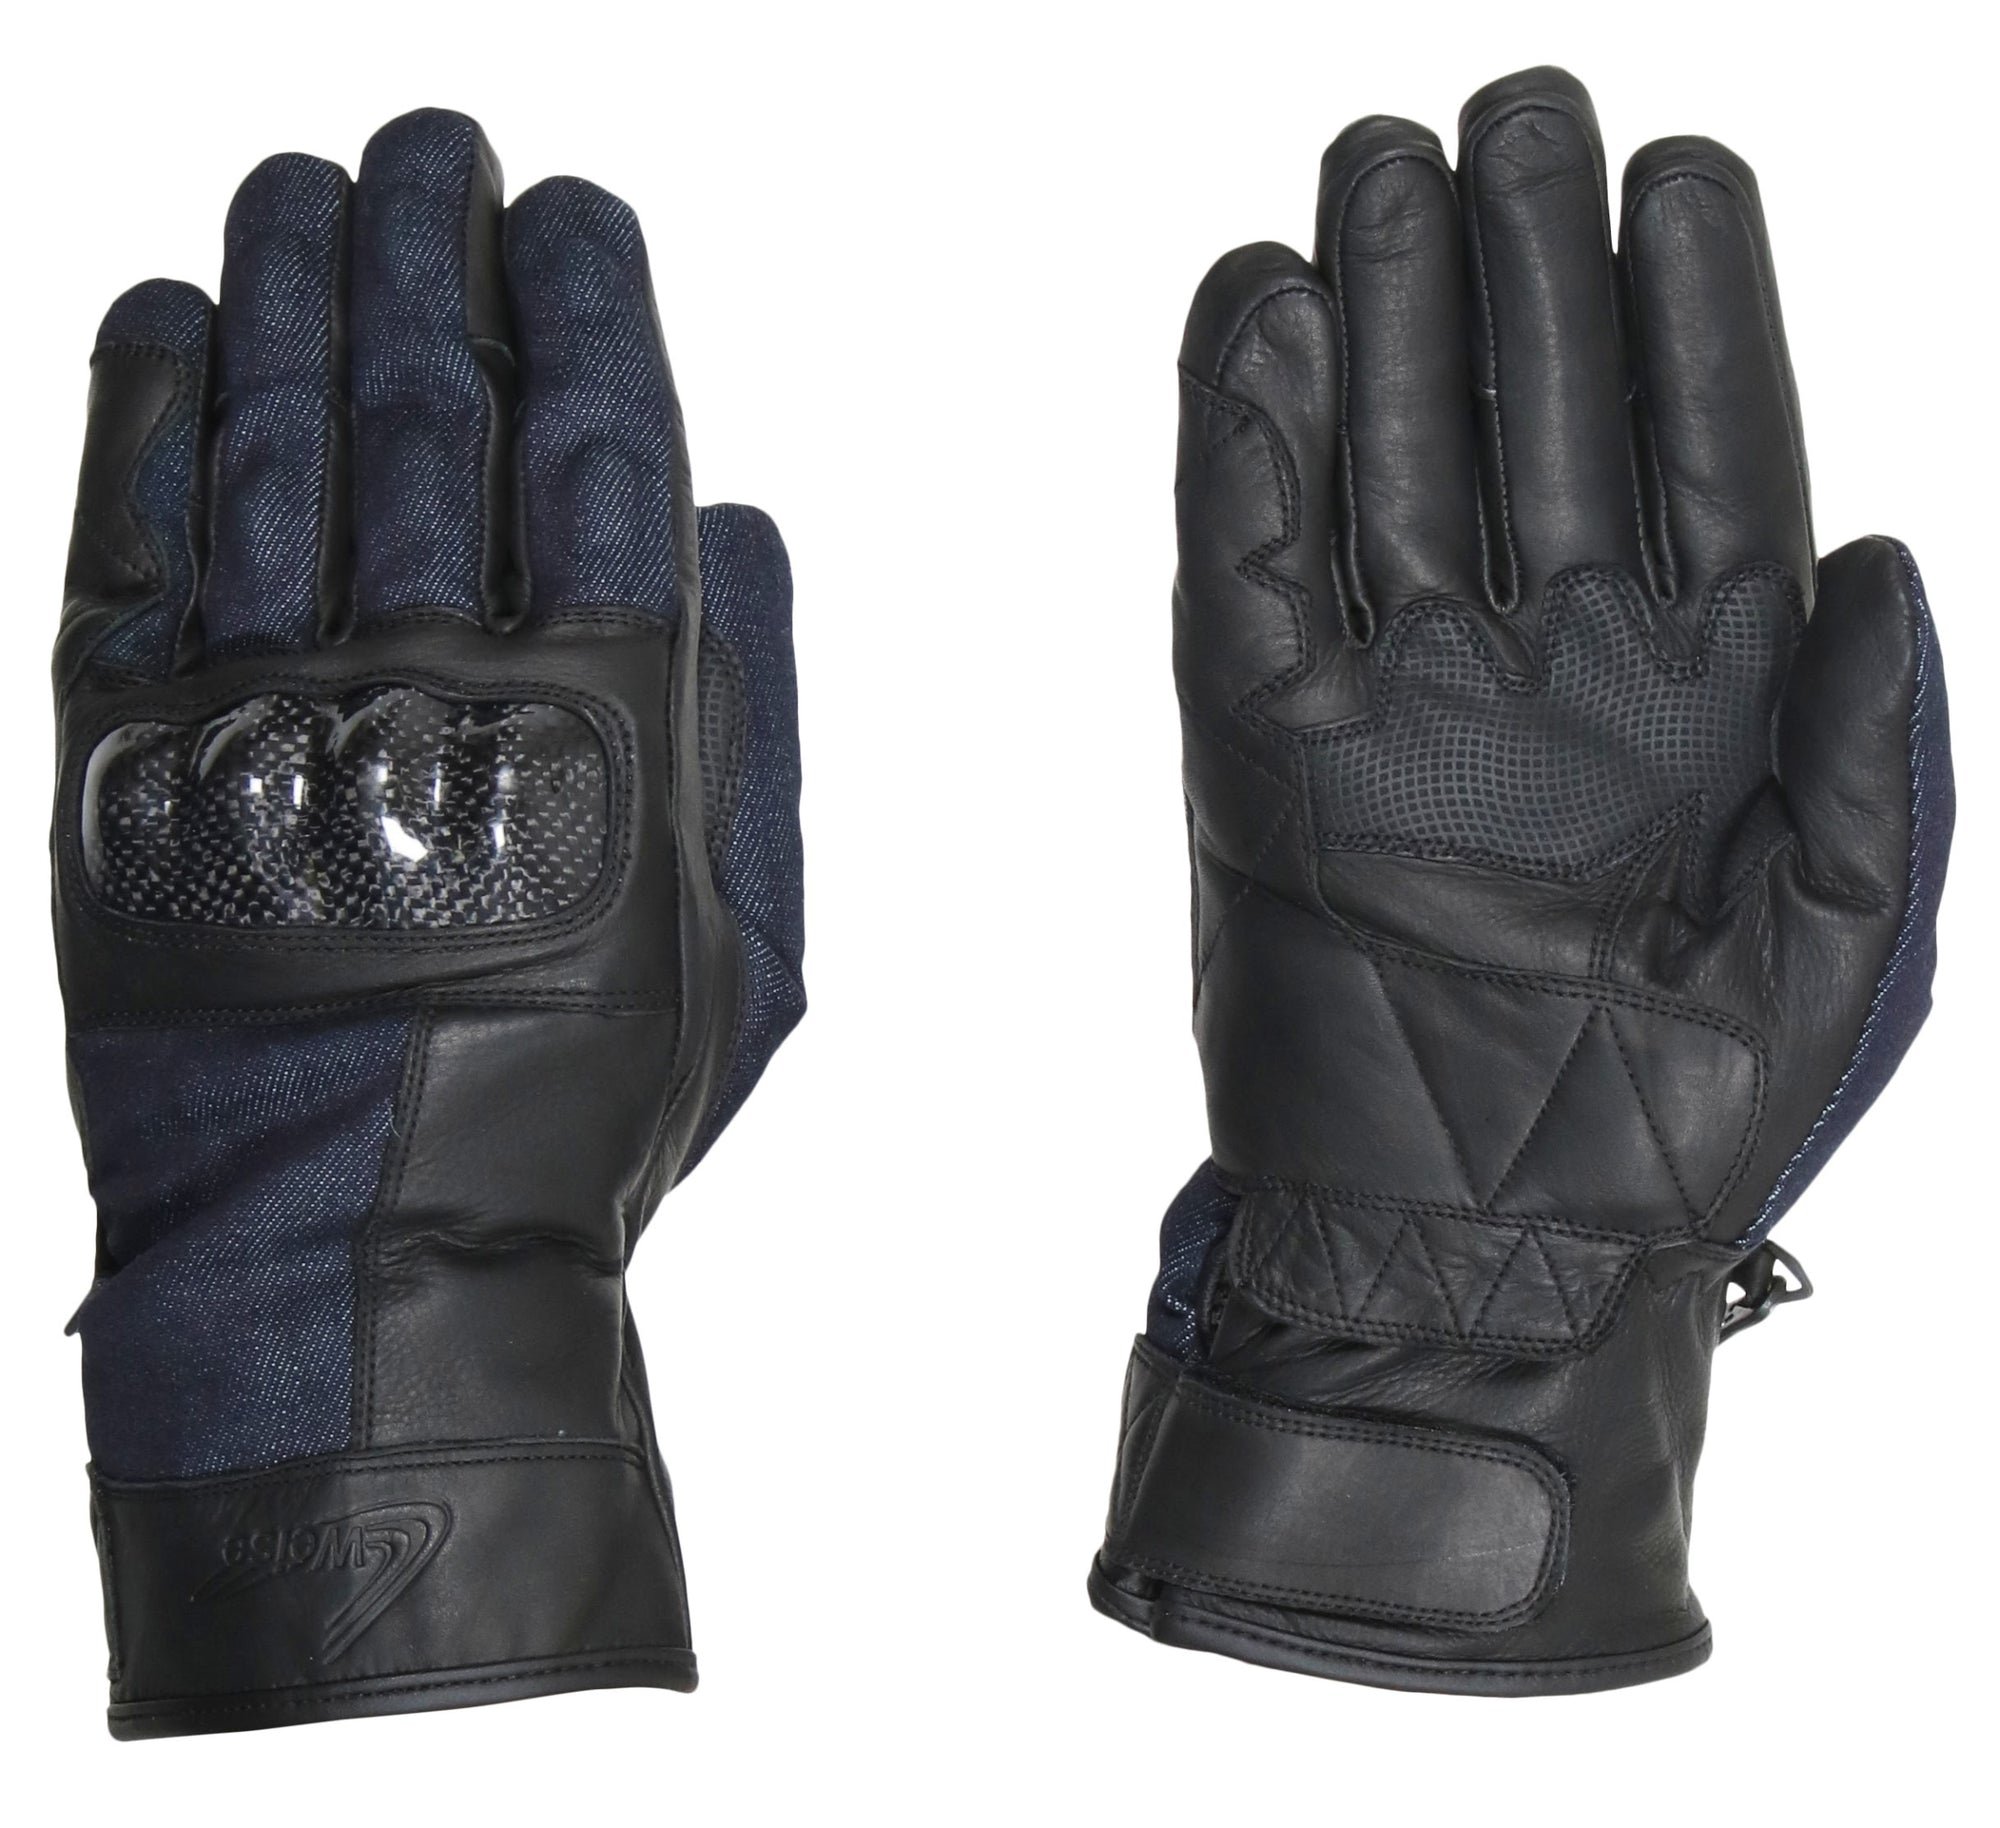 Weise Glove - Raider, Gloves, Weise - Averys Motorcycles